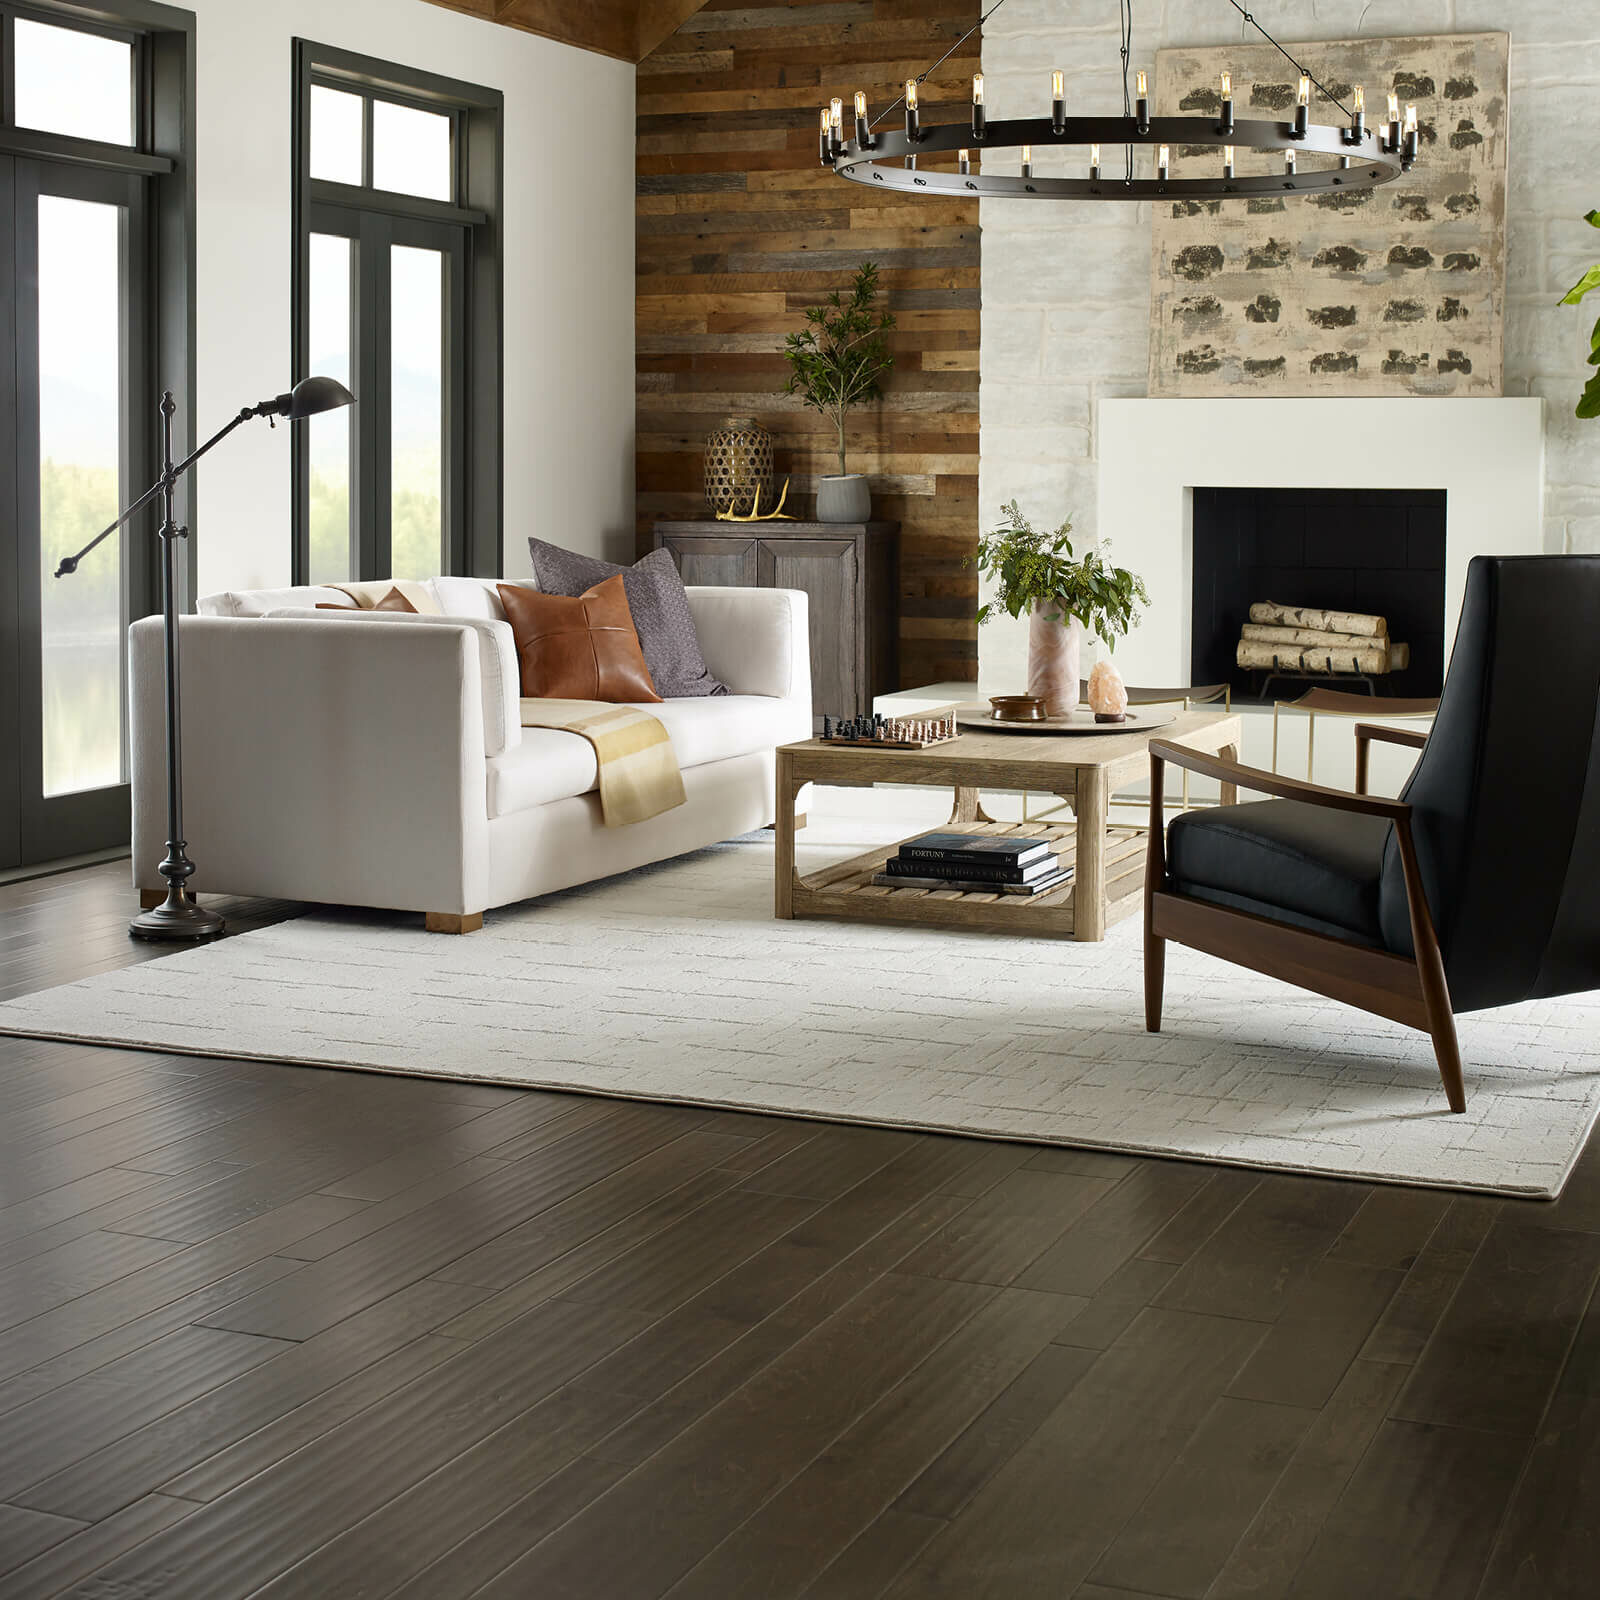 shaw hardwood flooring | Great Western Flooring Co.